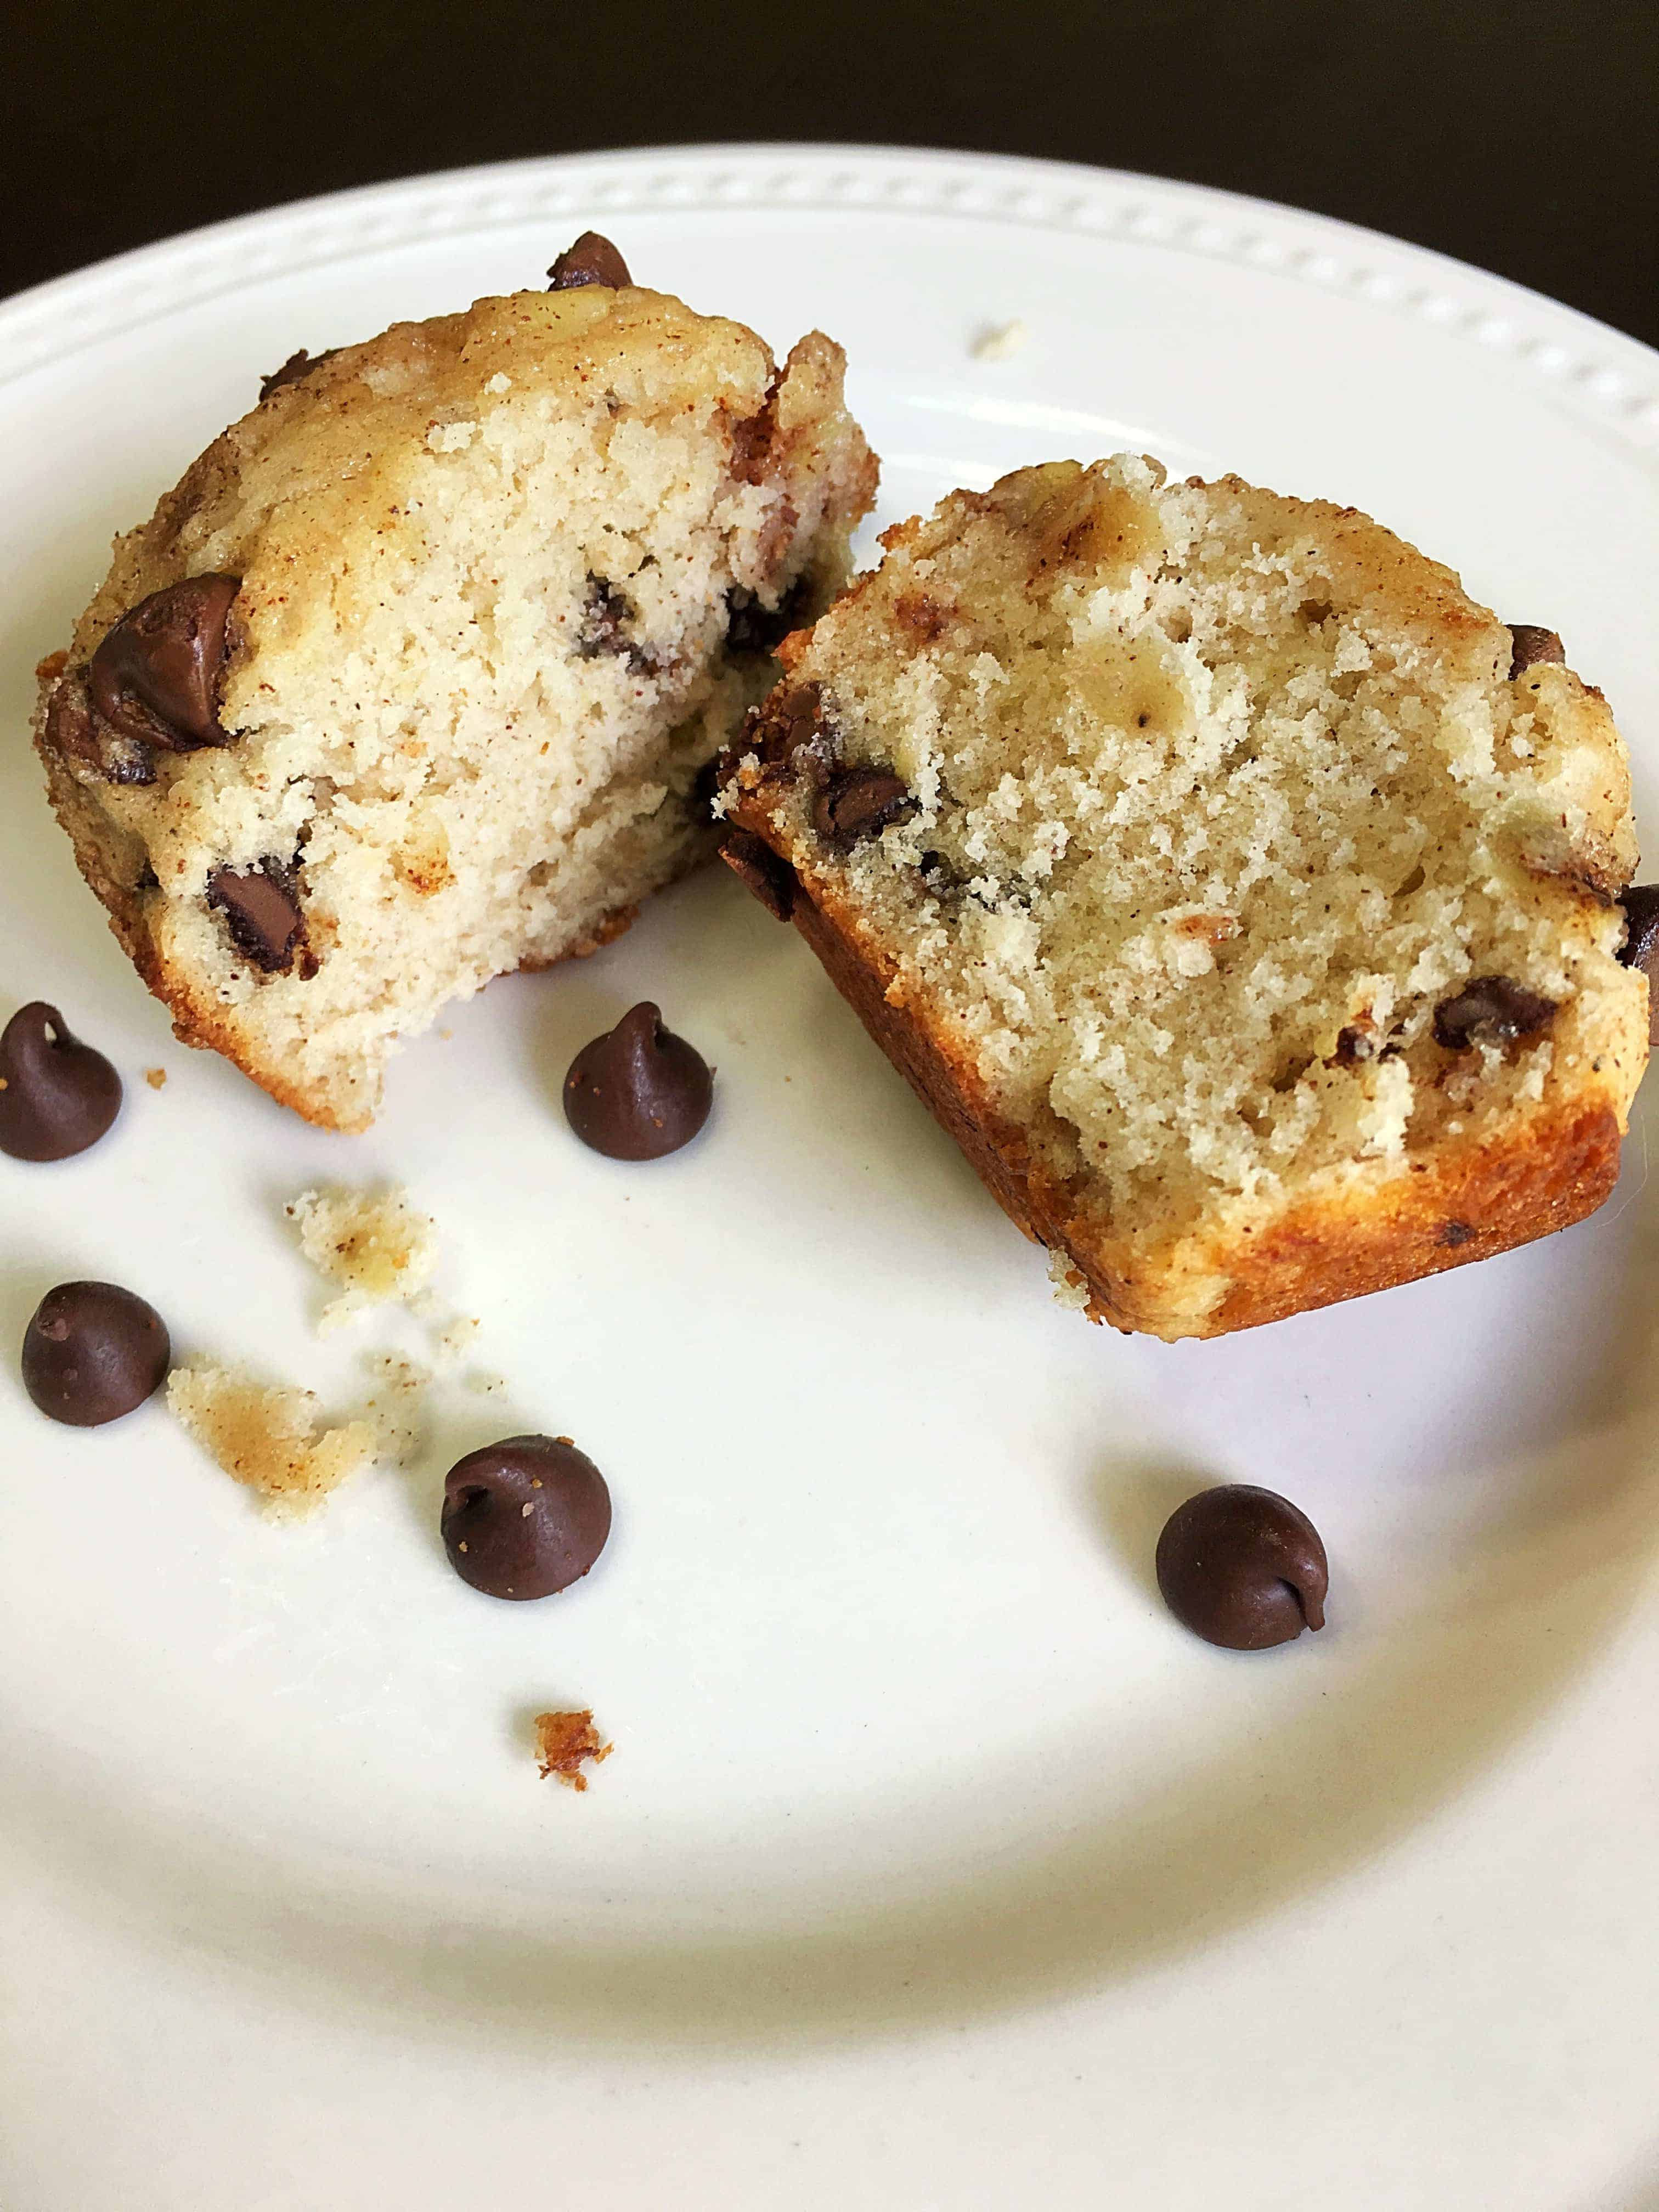 These Cinnamon Sugar Chocolate Chip Banana Muffins are easy, delicious, moist, and have the perfect amount of sweetness with yummy chocolate chips and cinnamon sugar. Even better they only take 12-15 minutes to bake! #muffins #bananamuffins #breakfast #dessert #easymuffins